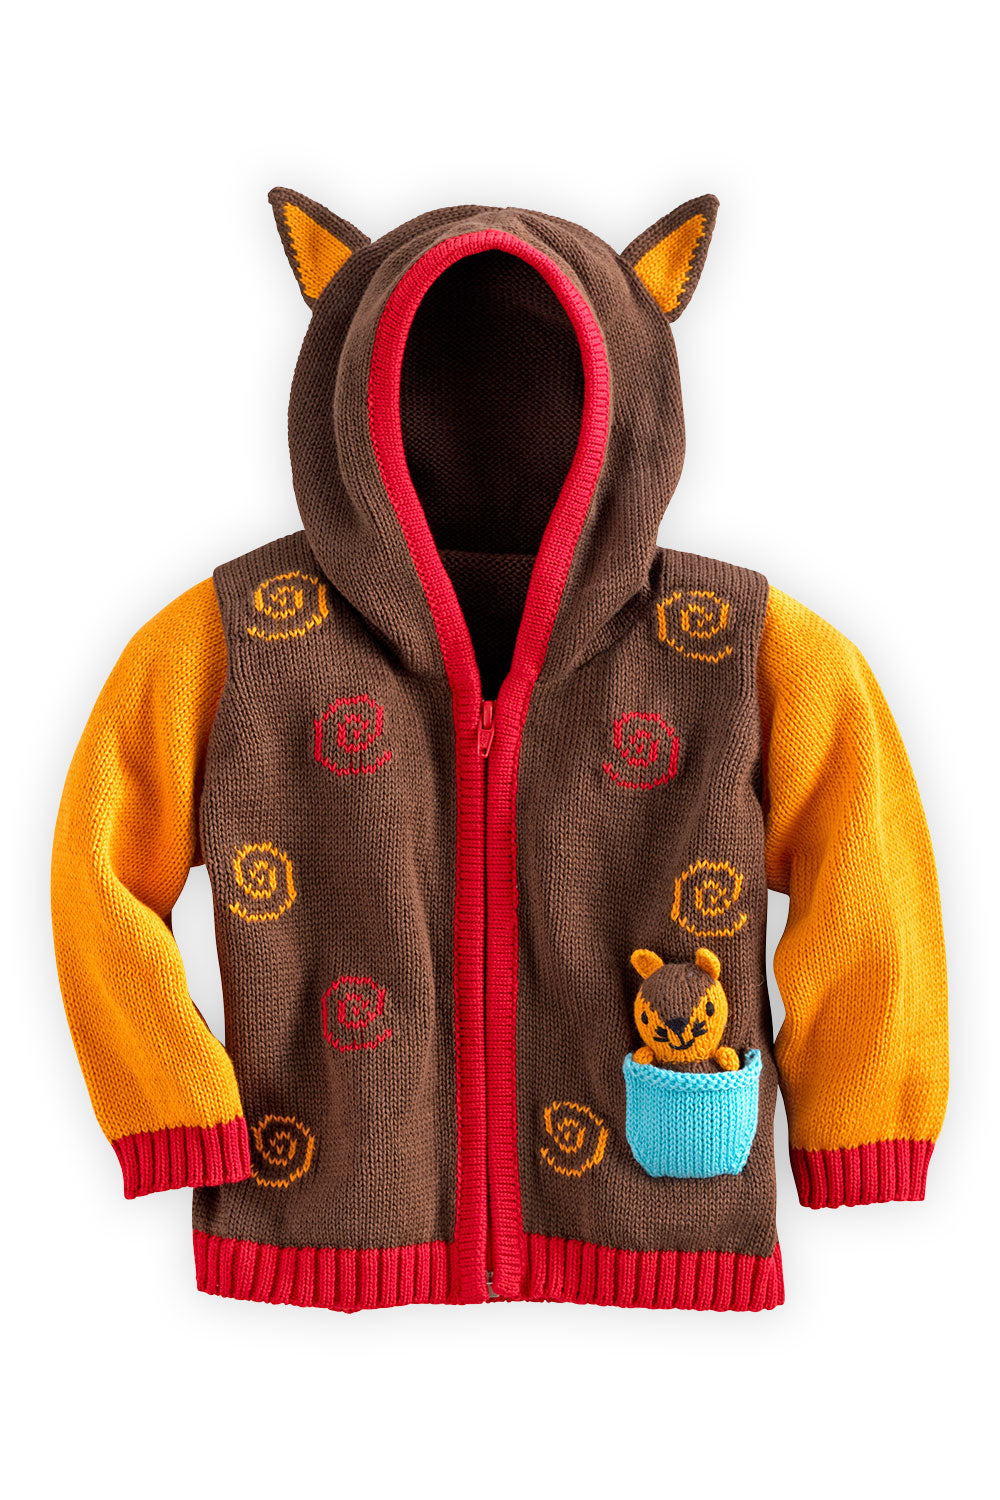 joobles-fair-trade-organic-baby-cardigan-sweater-silly-the-fox